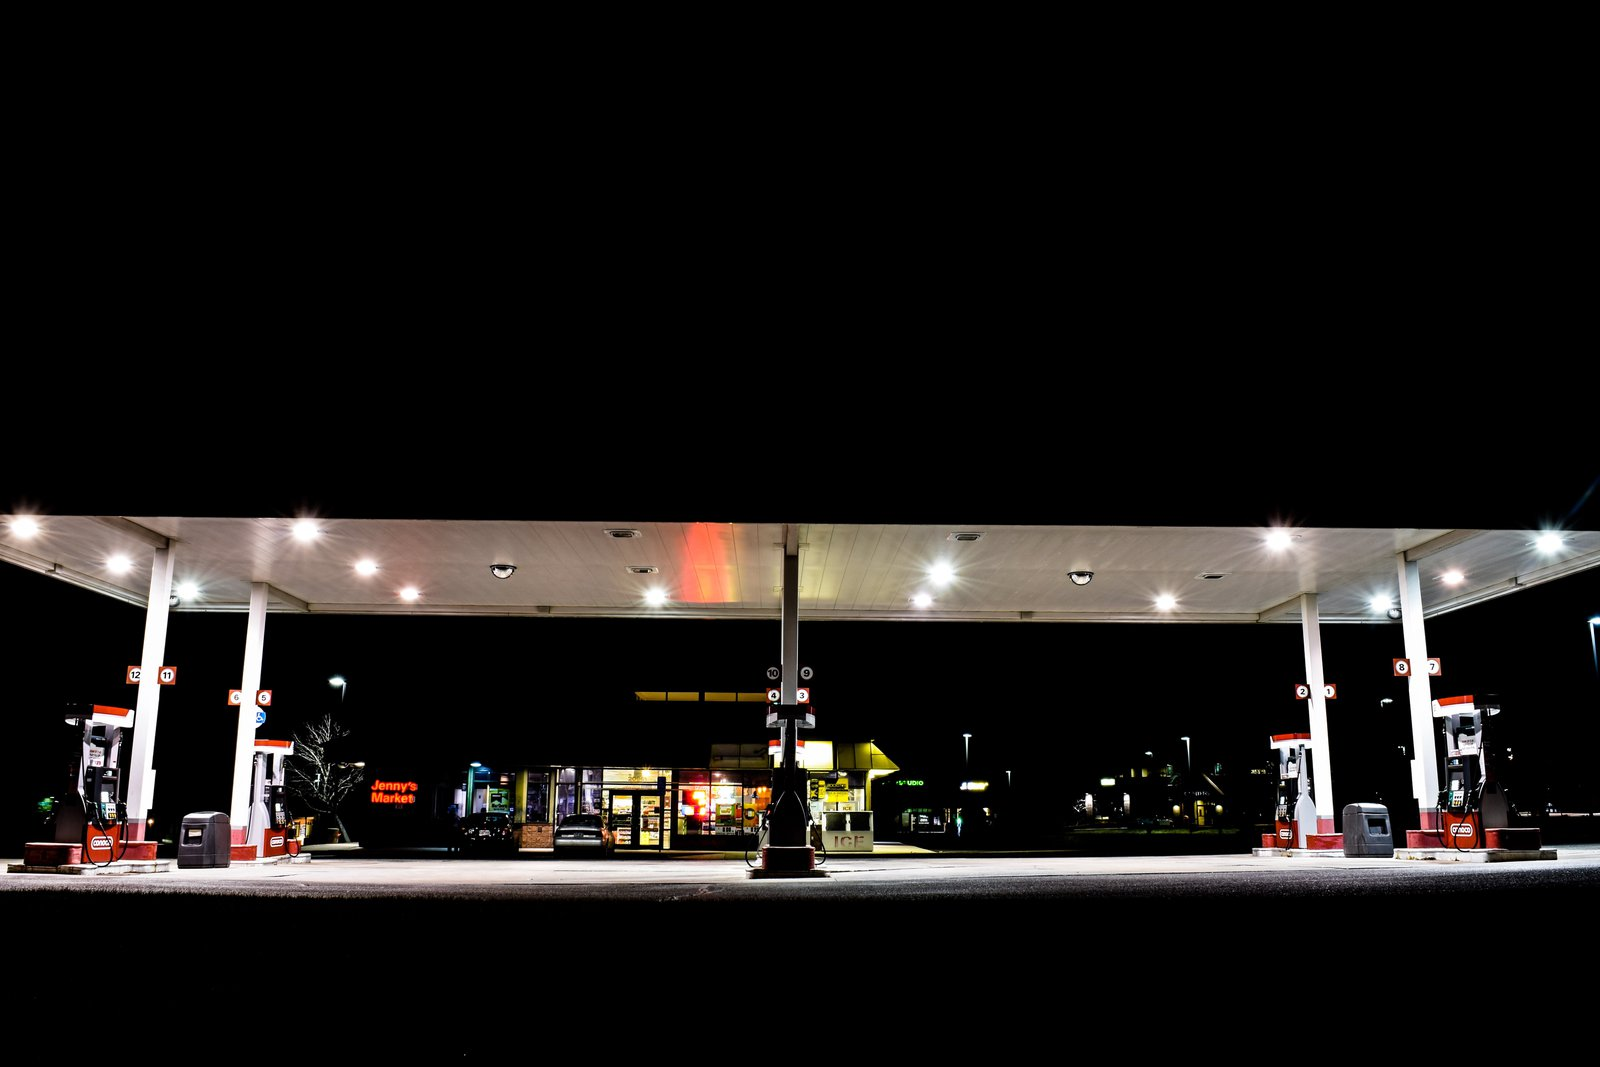 Night gas station